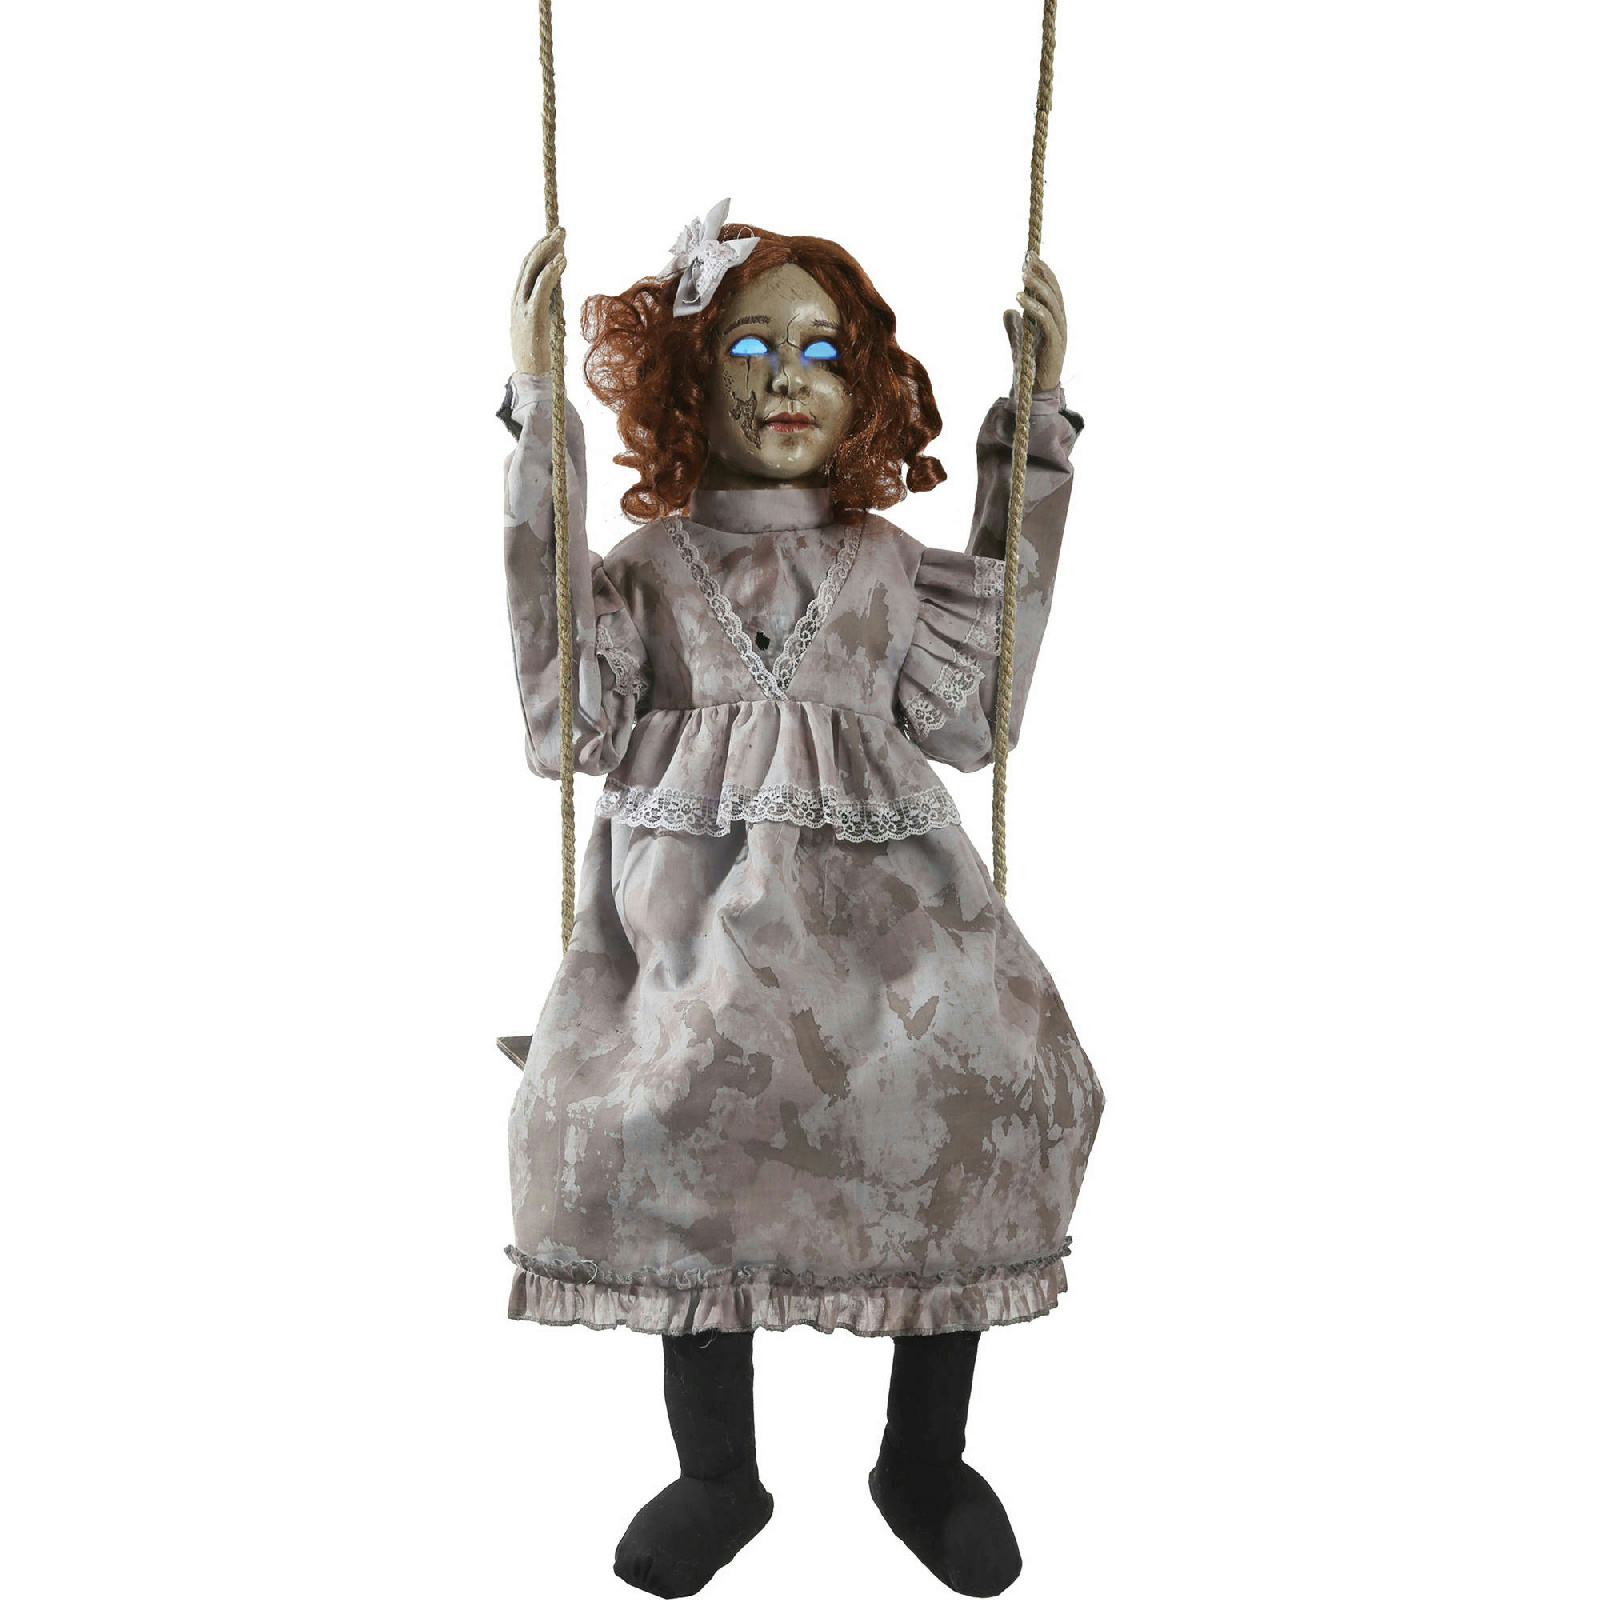 Swinging decrepit doll animated halloween decoration for Animated halloween decoration